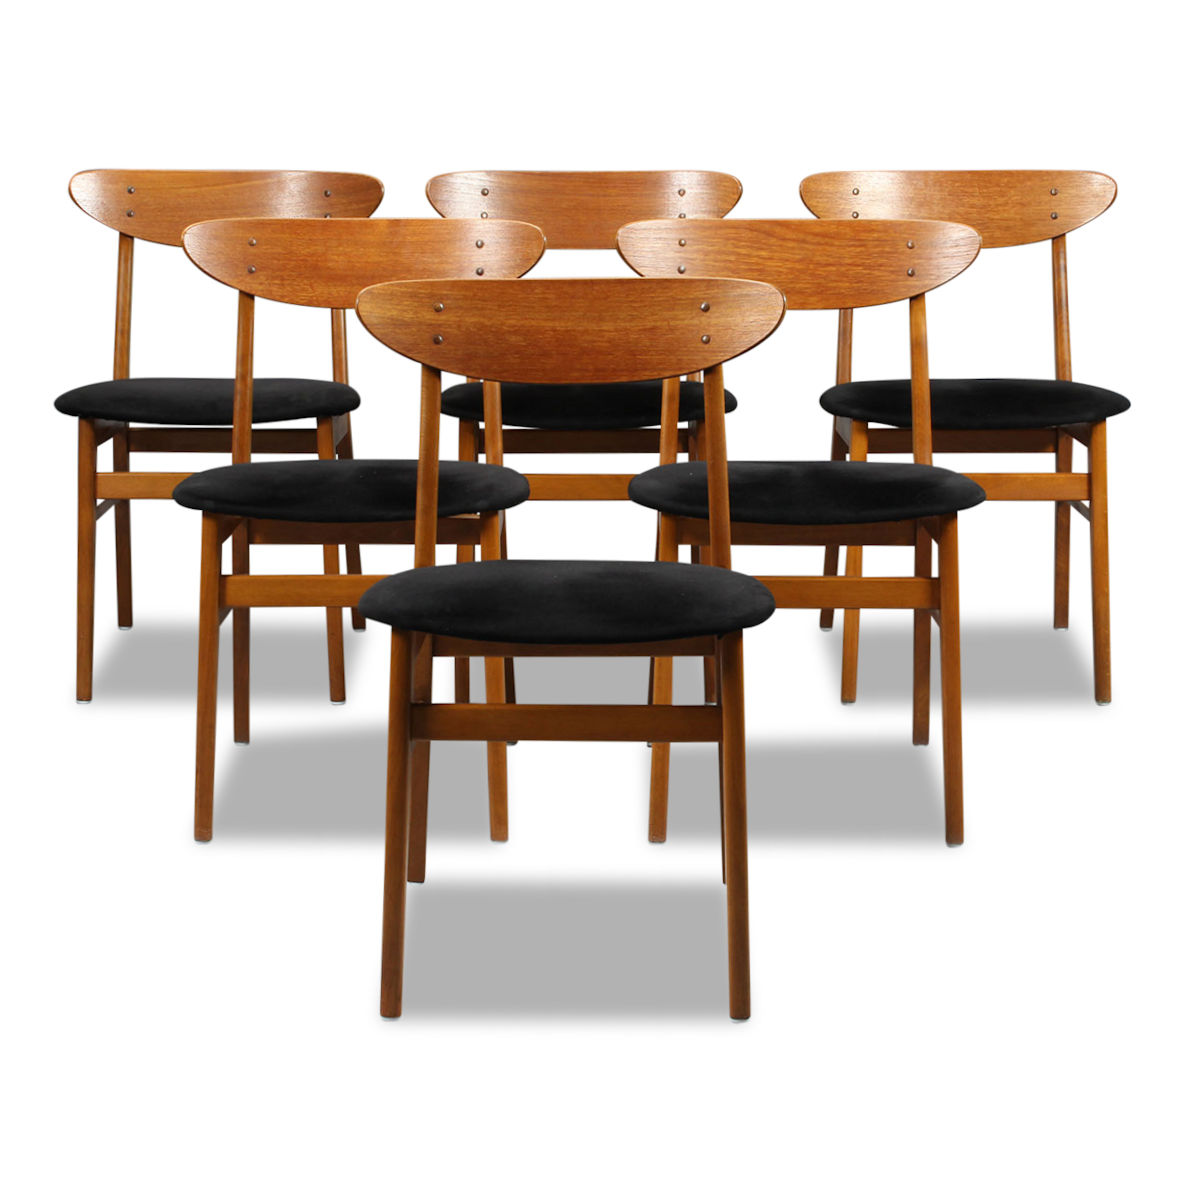 Superb Vintage Teak Farstrup Model 210 Dining Chairs Squirreltailoven Fun Painted Chair Ideas Images Squirreltailovenorg